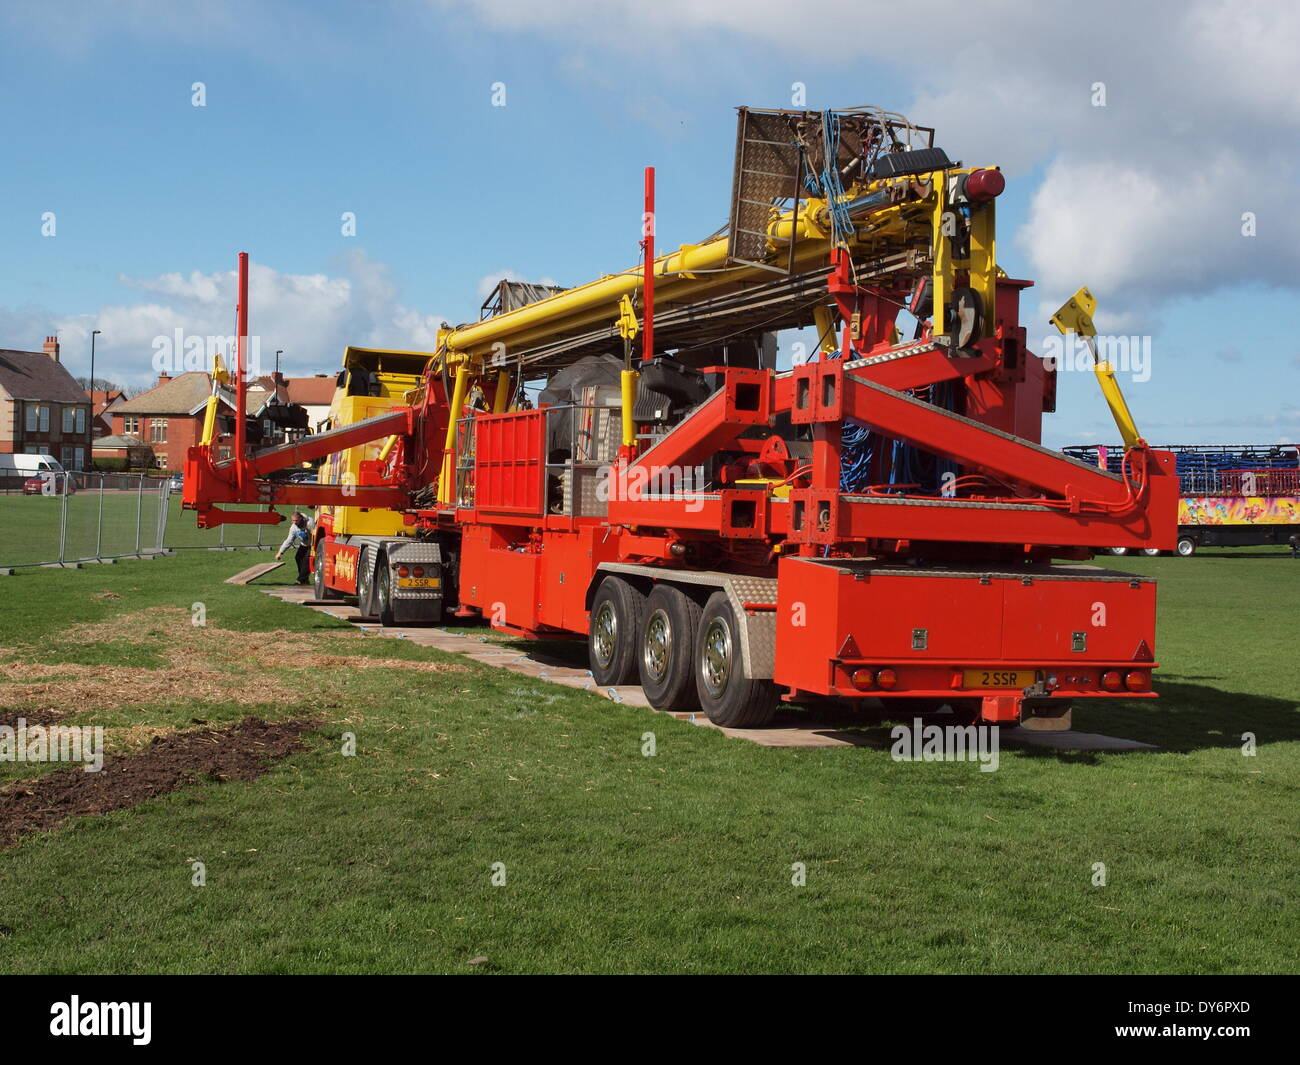 Newcastle Upon Tyne UK 8th April 2014. The funfair arrives on the links, Whitley Bay for the annual Easter break. Credit:  james walsh/Alamy Live News - Stock Image